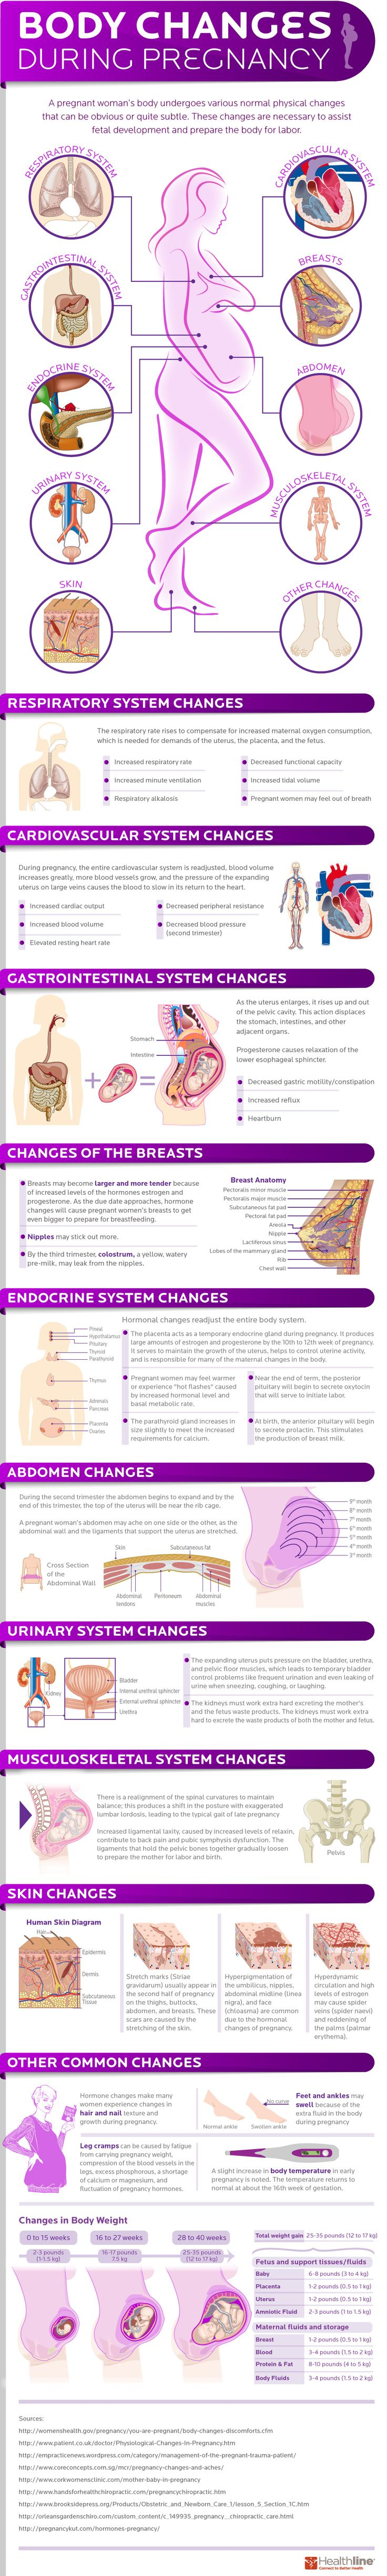 This infographic covers all of the changes that take place throughout the body during pregnancy.whoa!